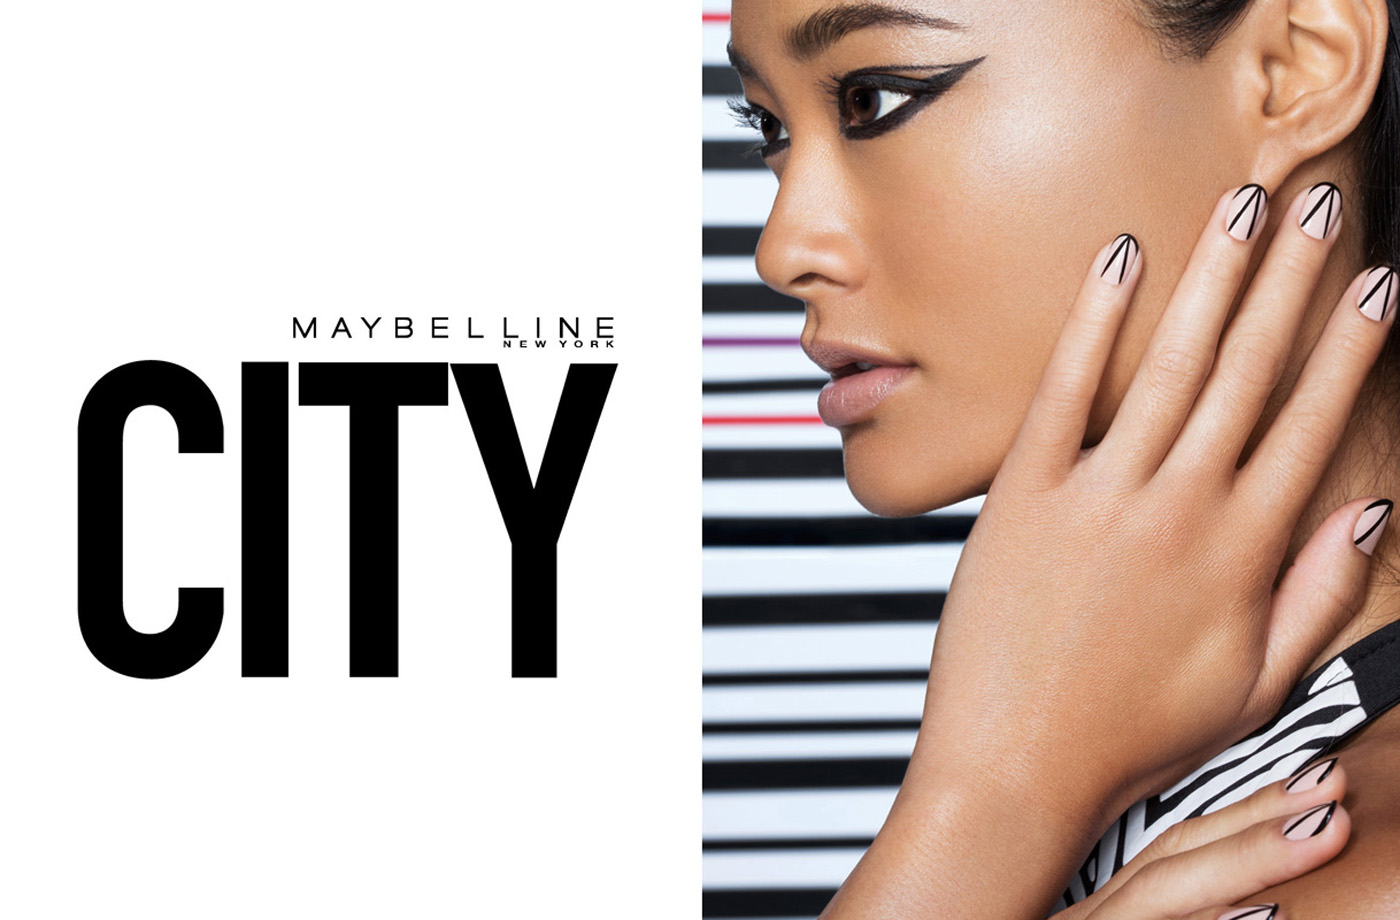 Complice -  Maybelline_CITY_05.jpg